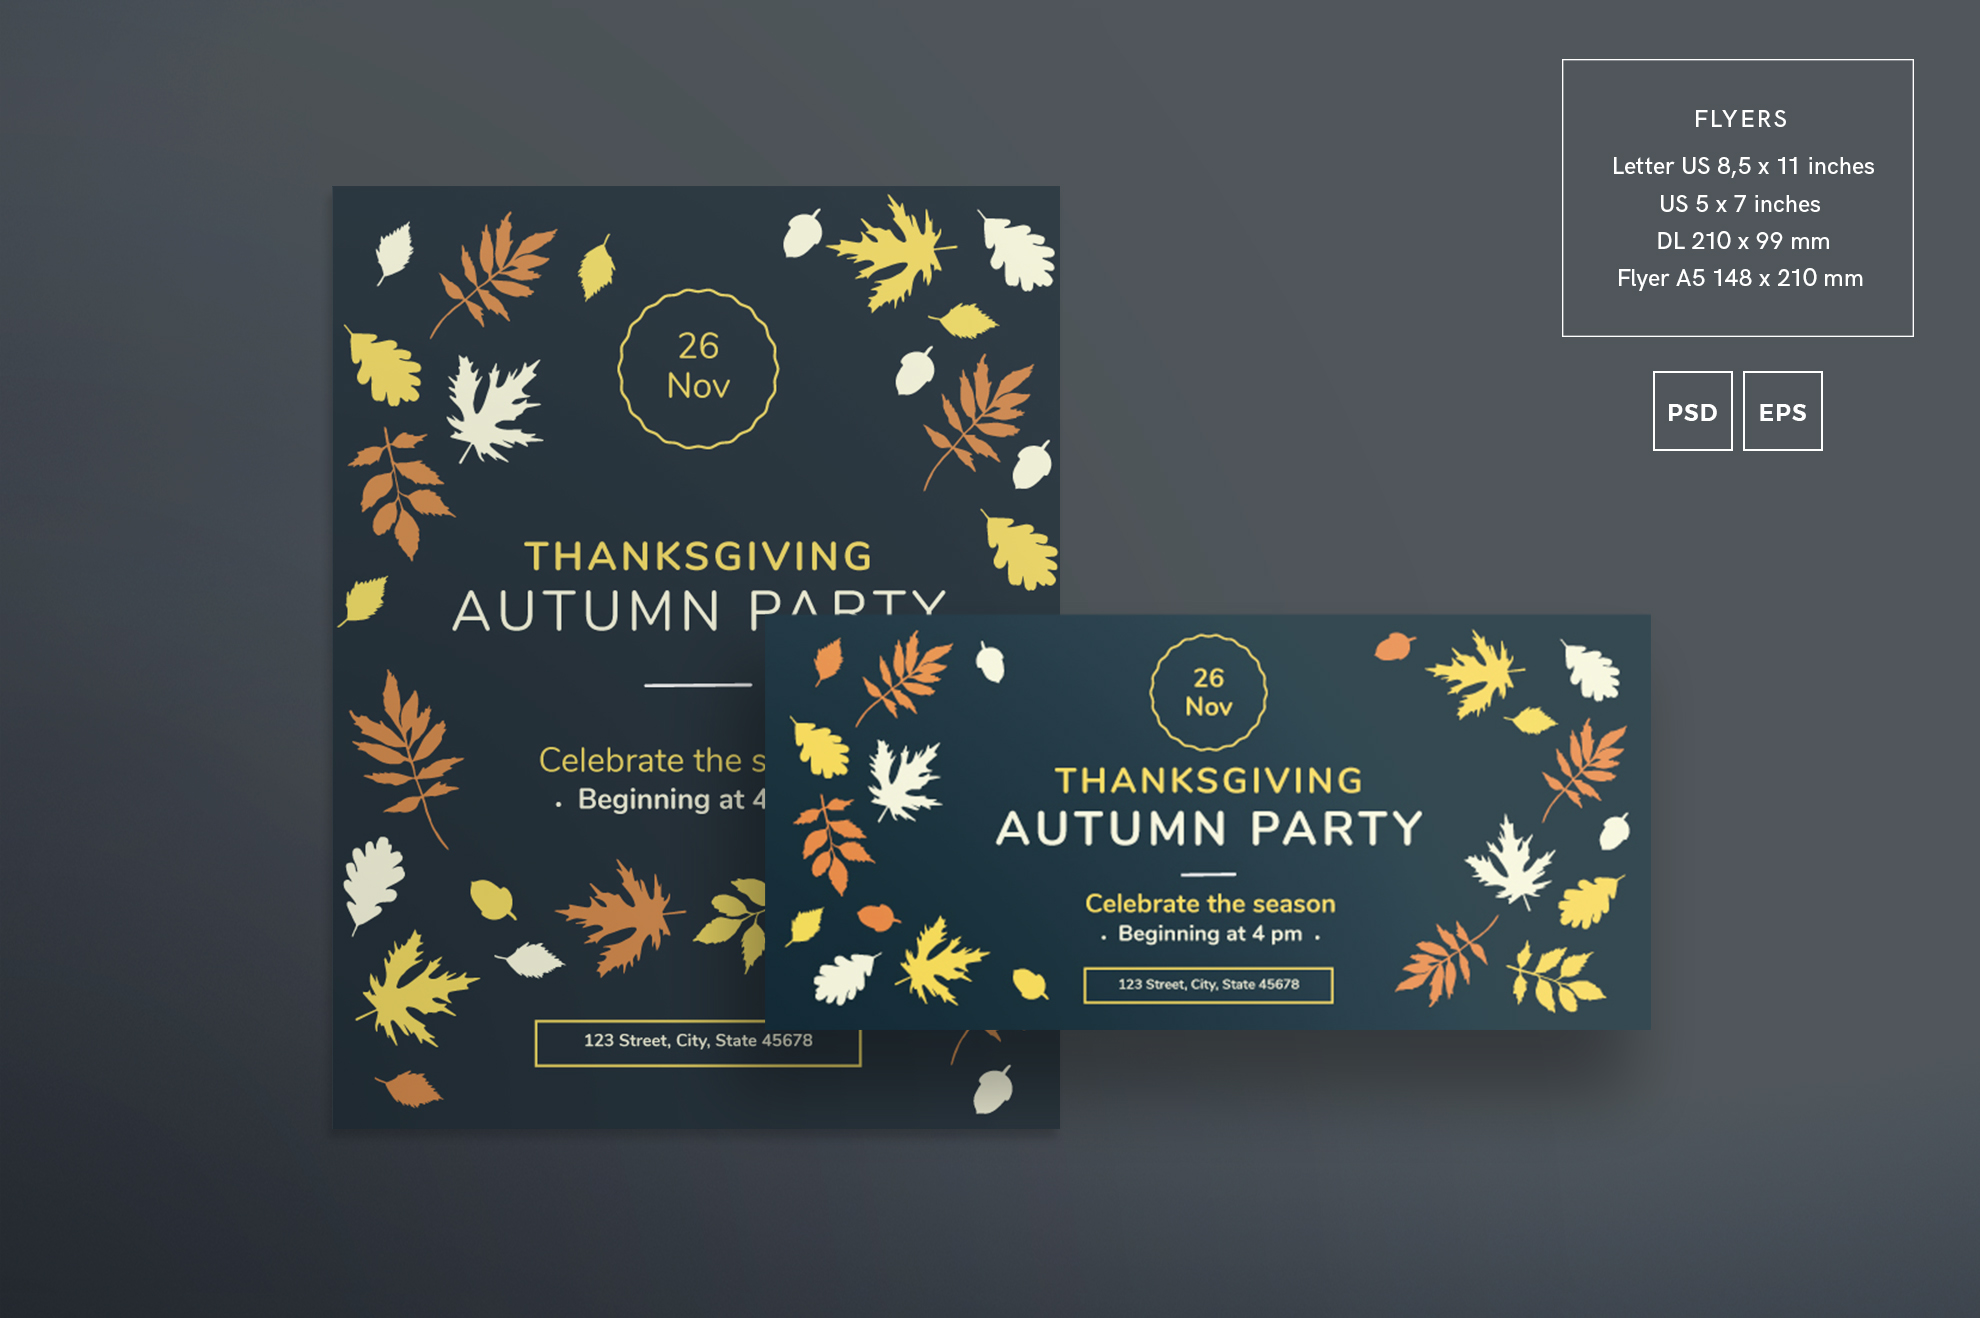 Thanksgiving Autumn Party Design Templates Bundle example image 2